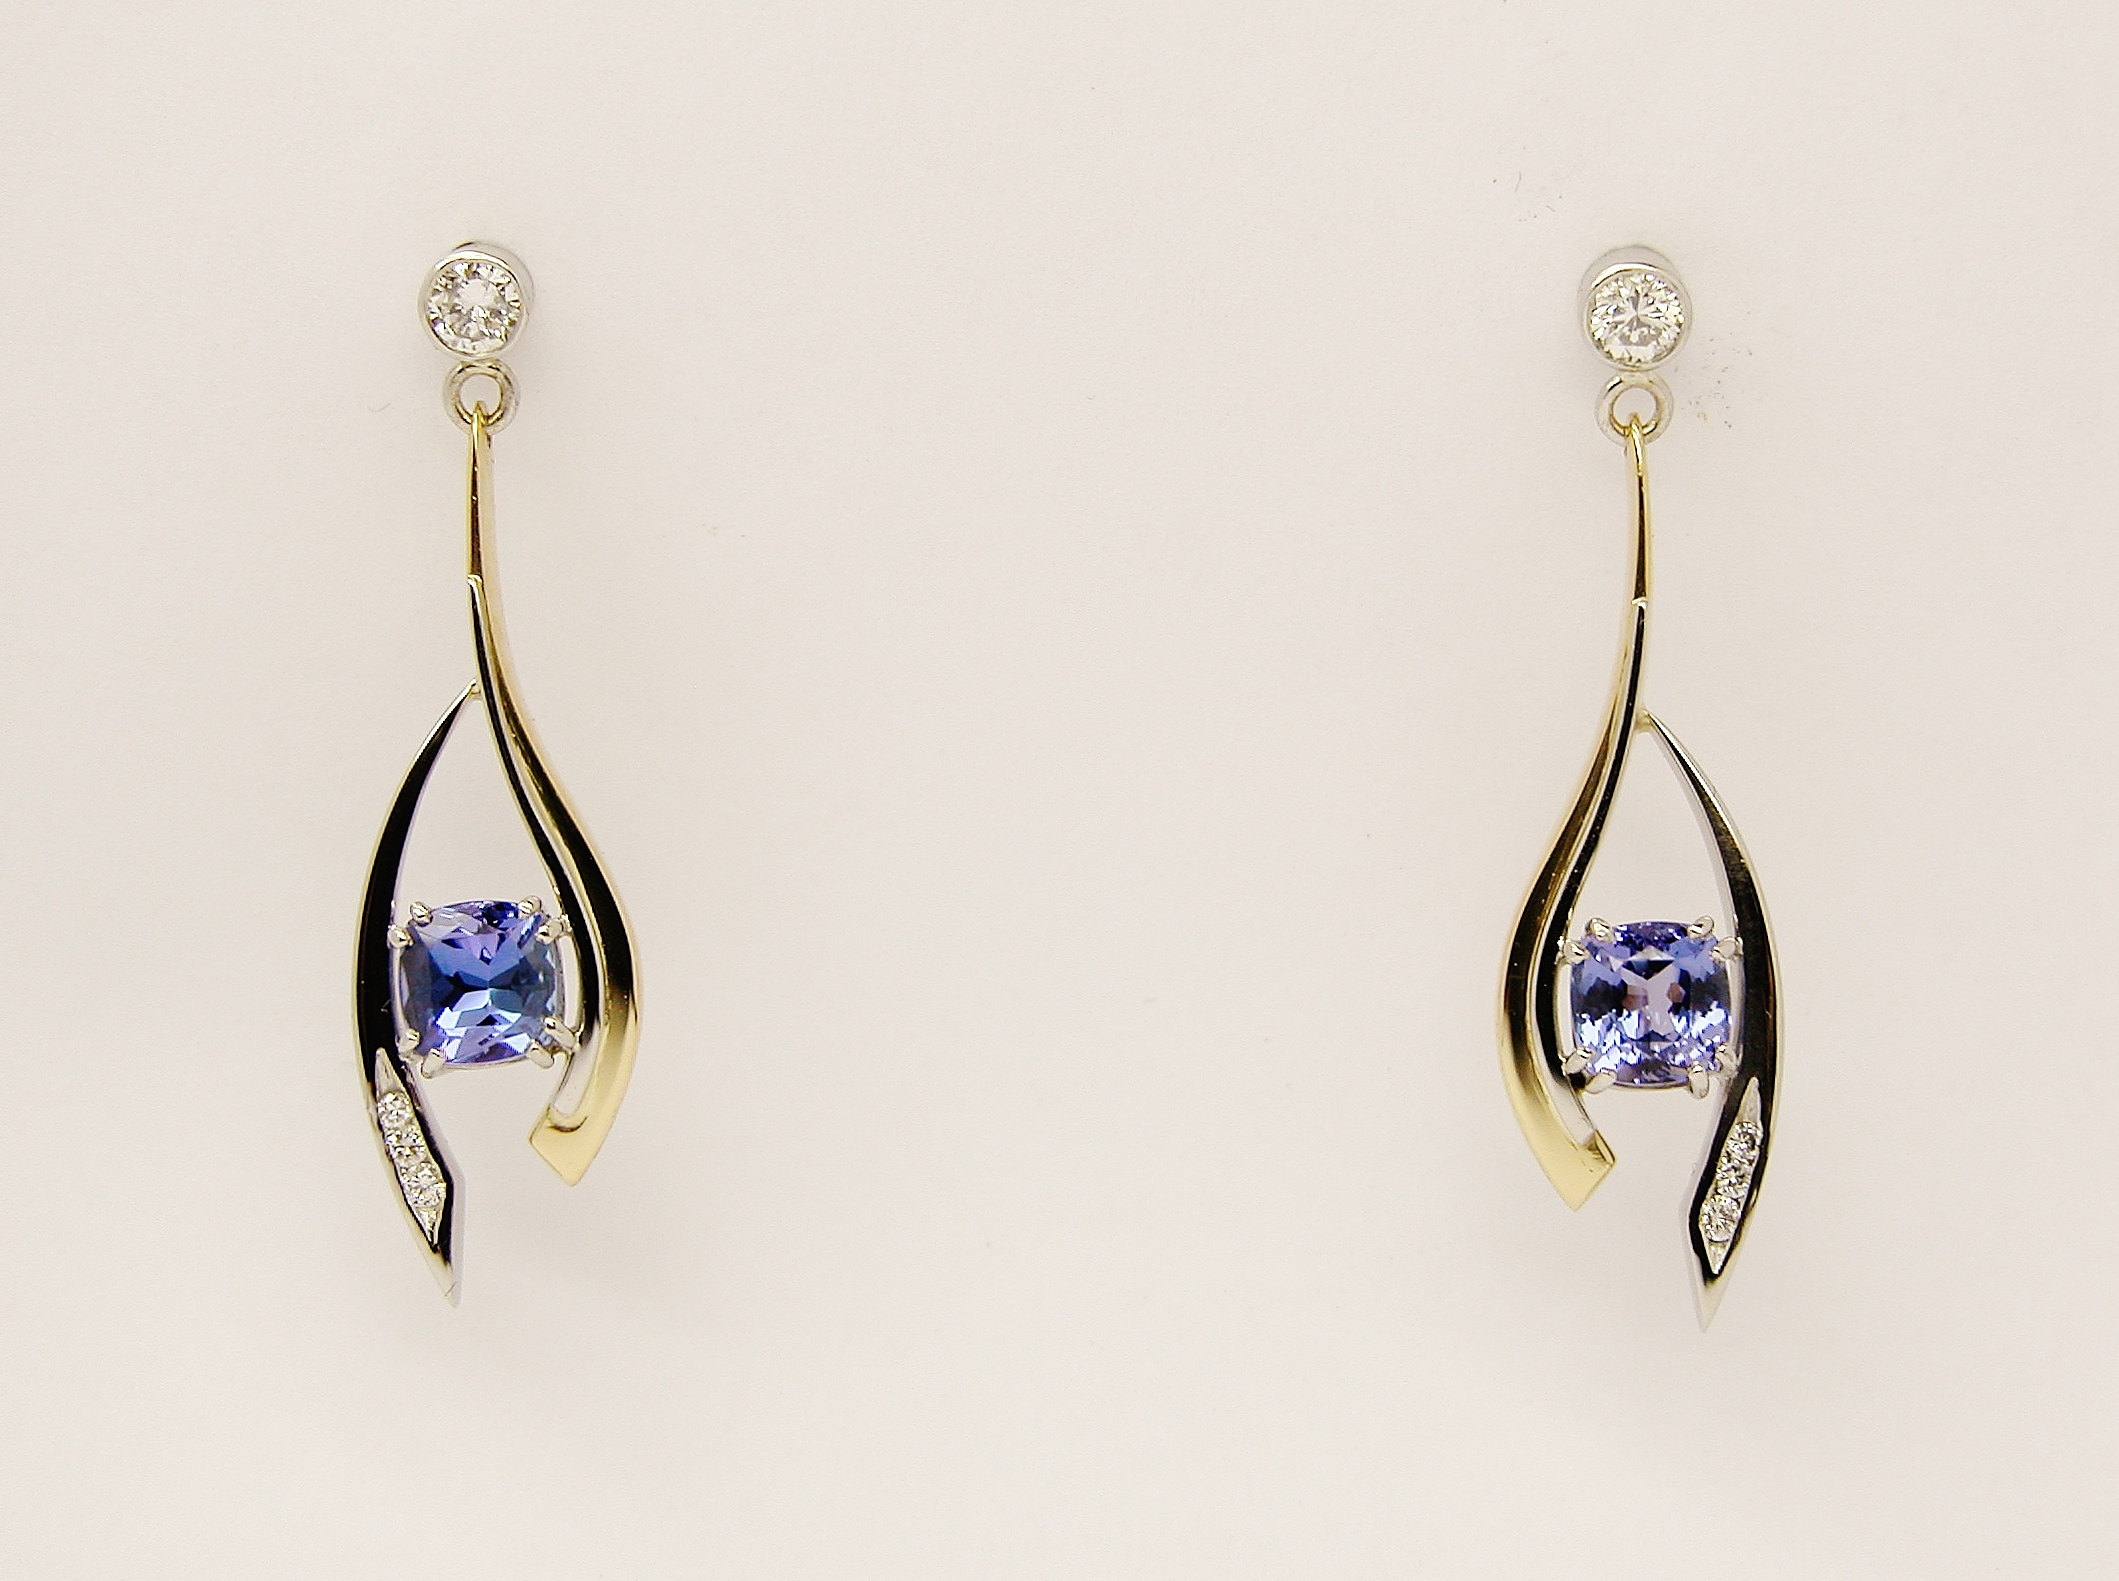 Cushion shaped Tanzanite and round brilliant cut diamond open pendulum earrings set in 18ct. yellow gold 2c palladium & platinum.